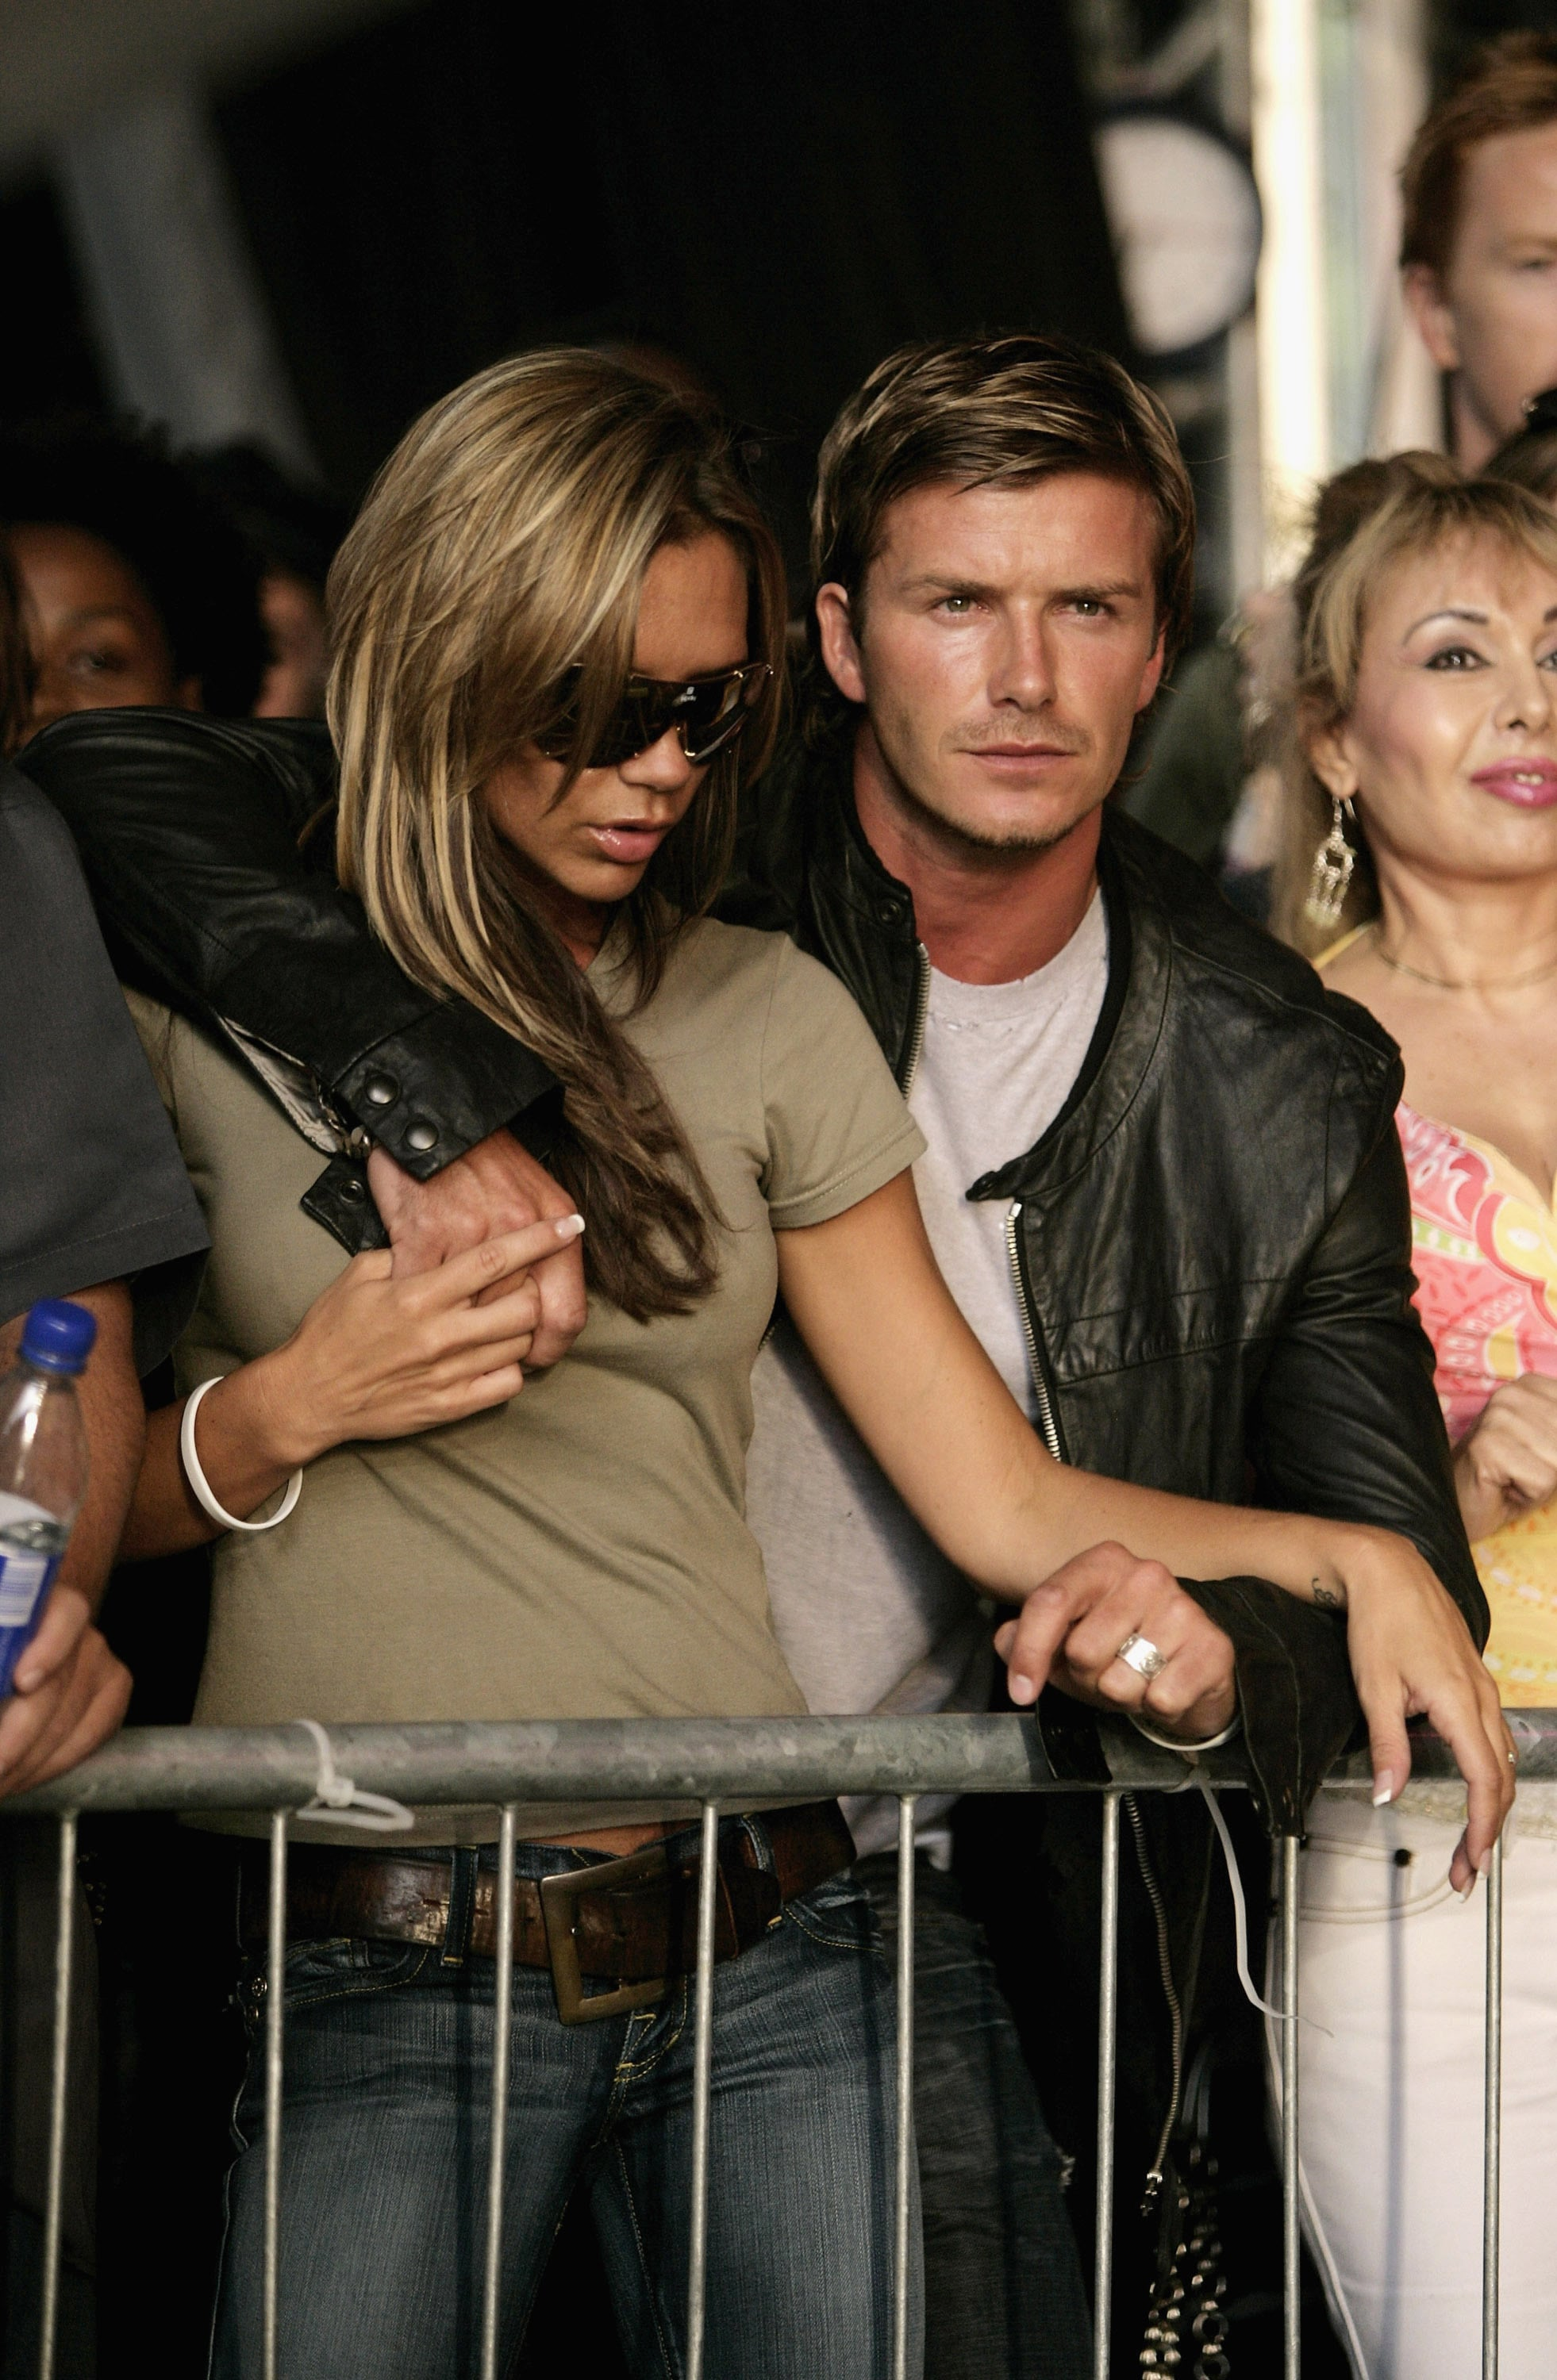 David had his arm around Victoria while watching Live 8 London in July 2005.